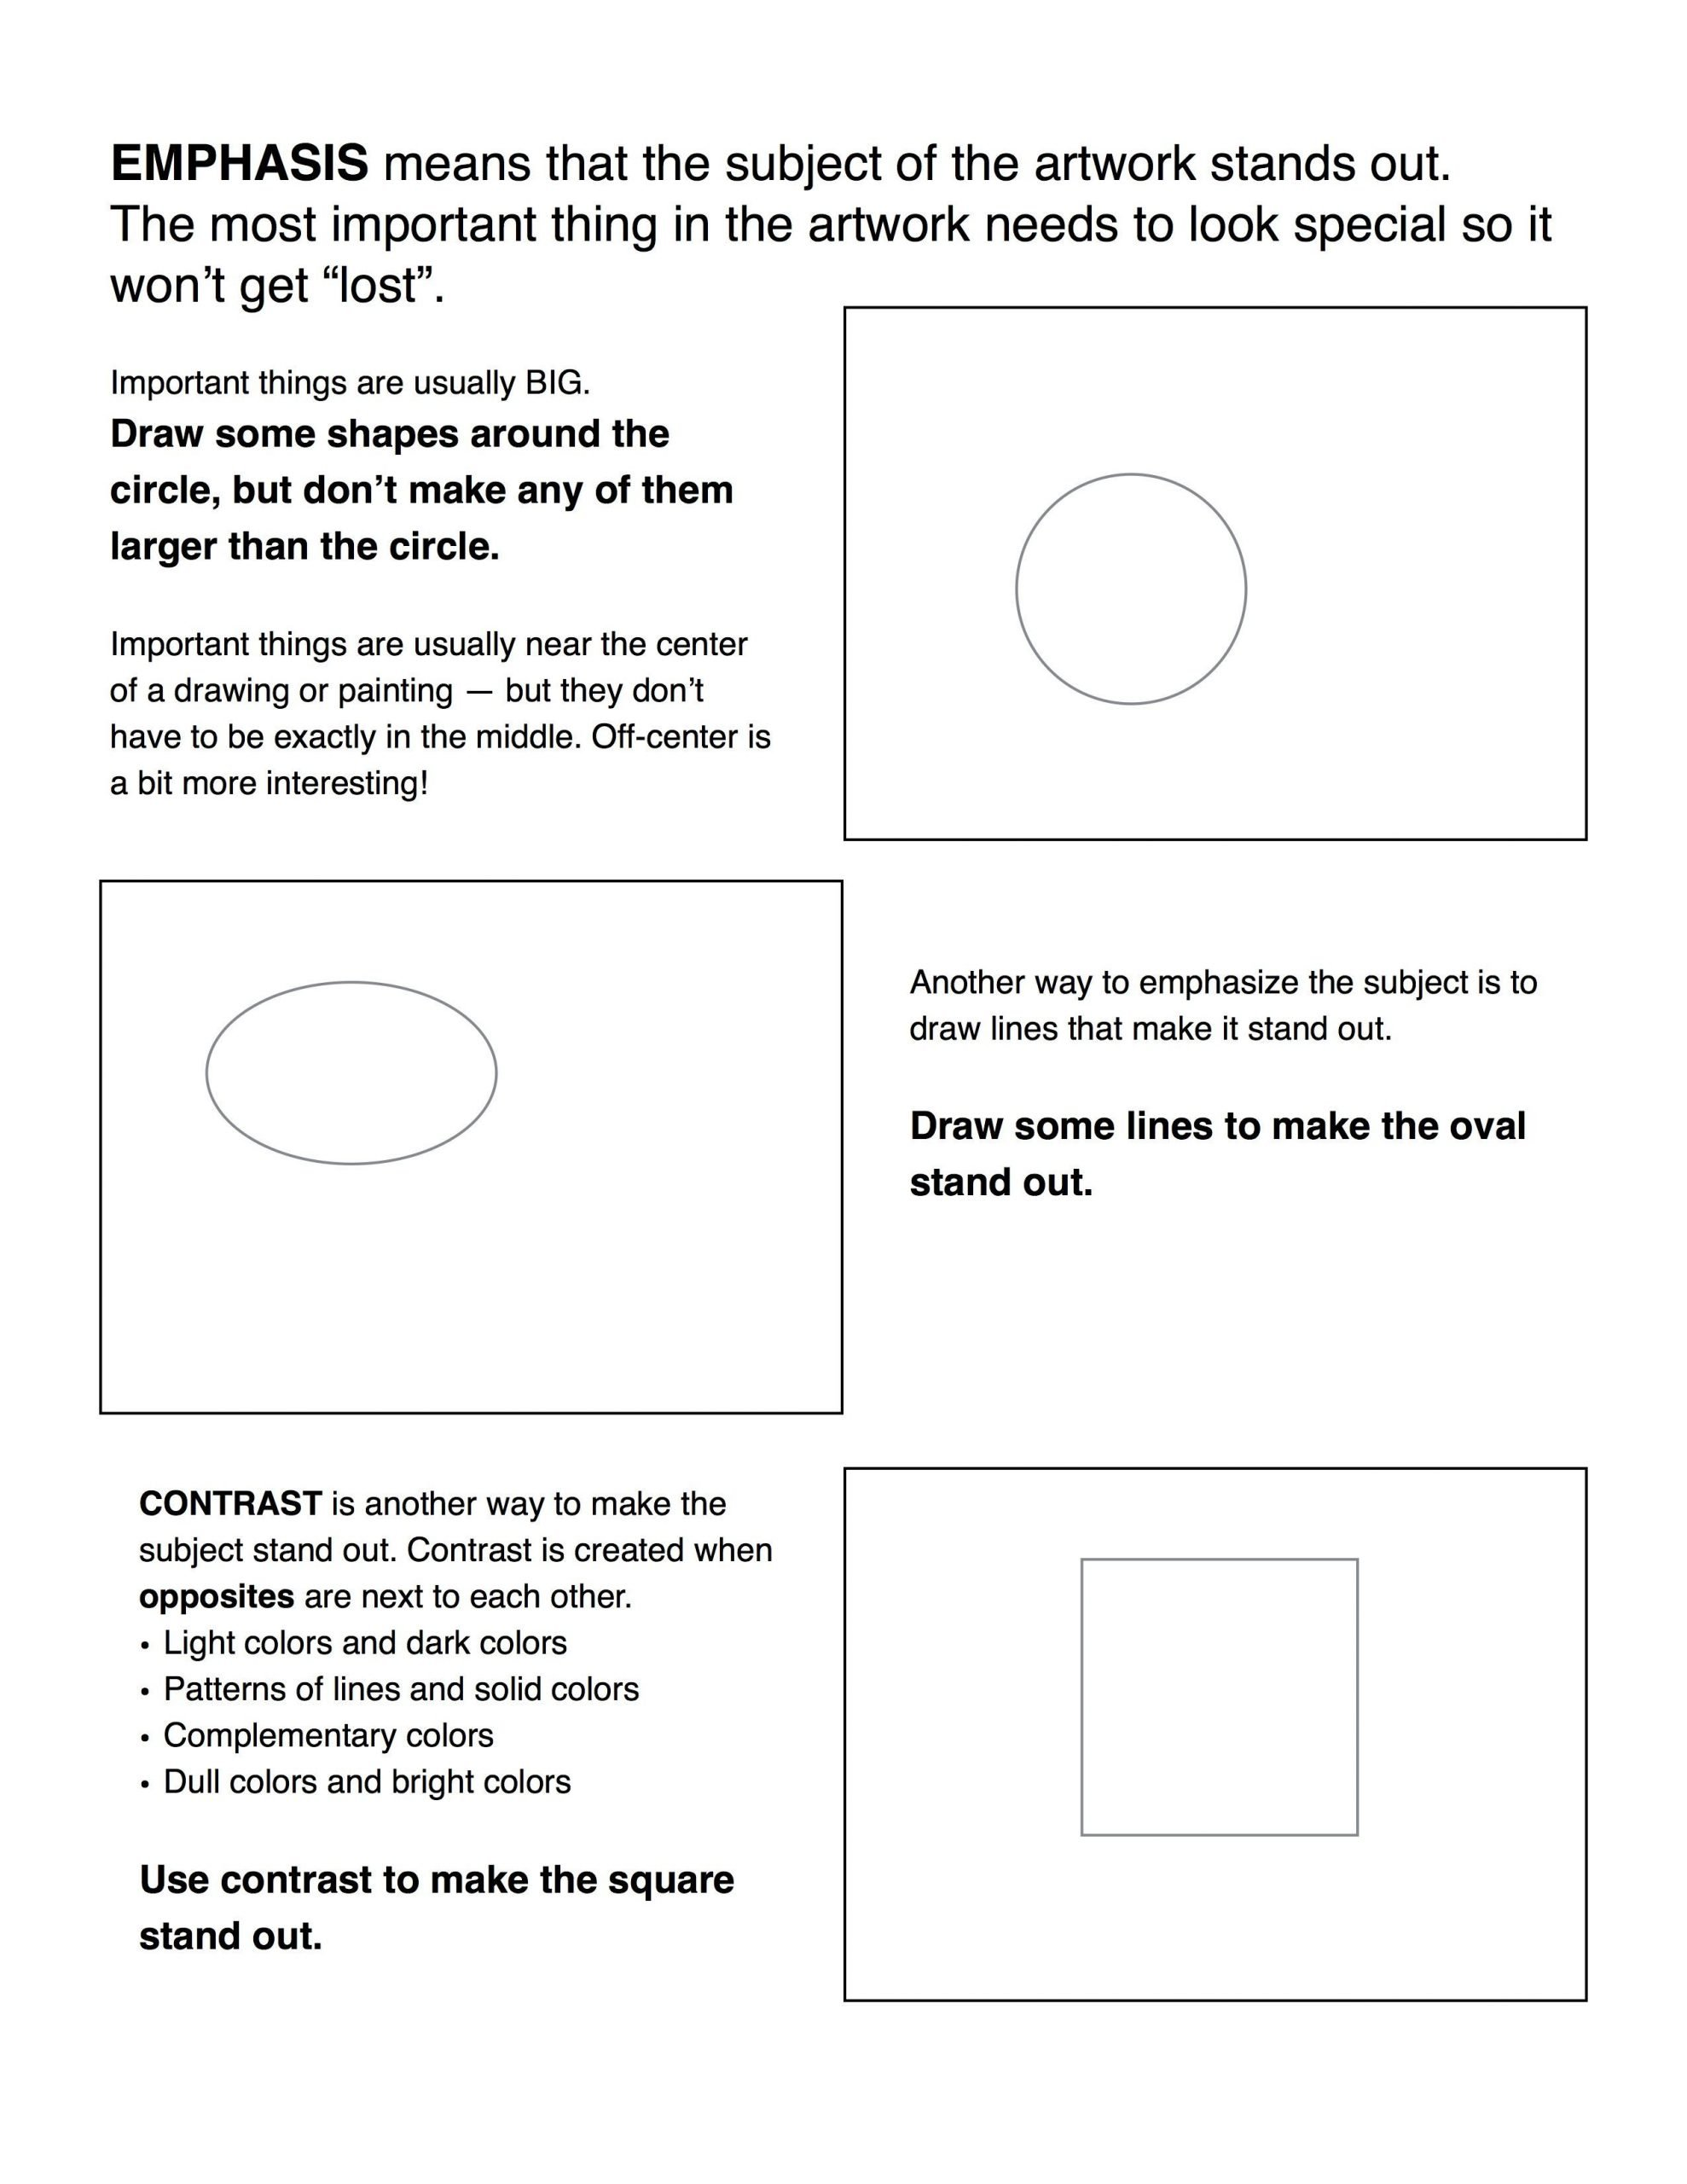 6th Grade Art Worksheets Emphasis Contrast Worksheet